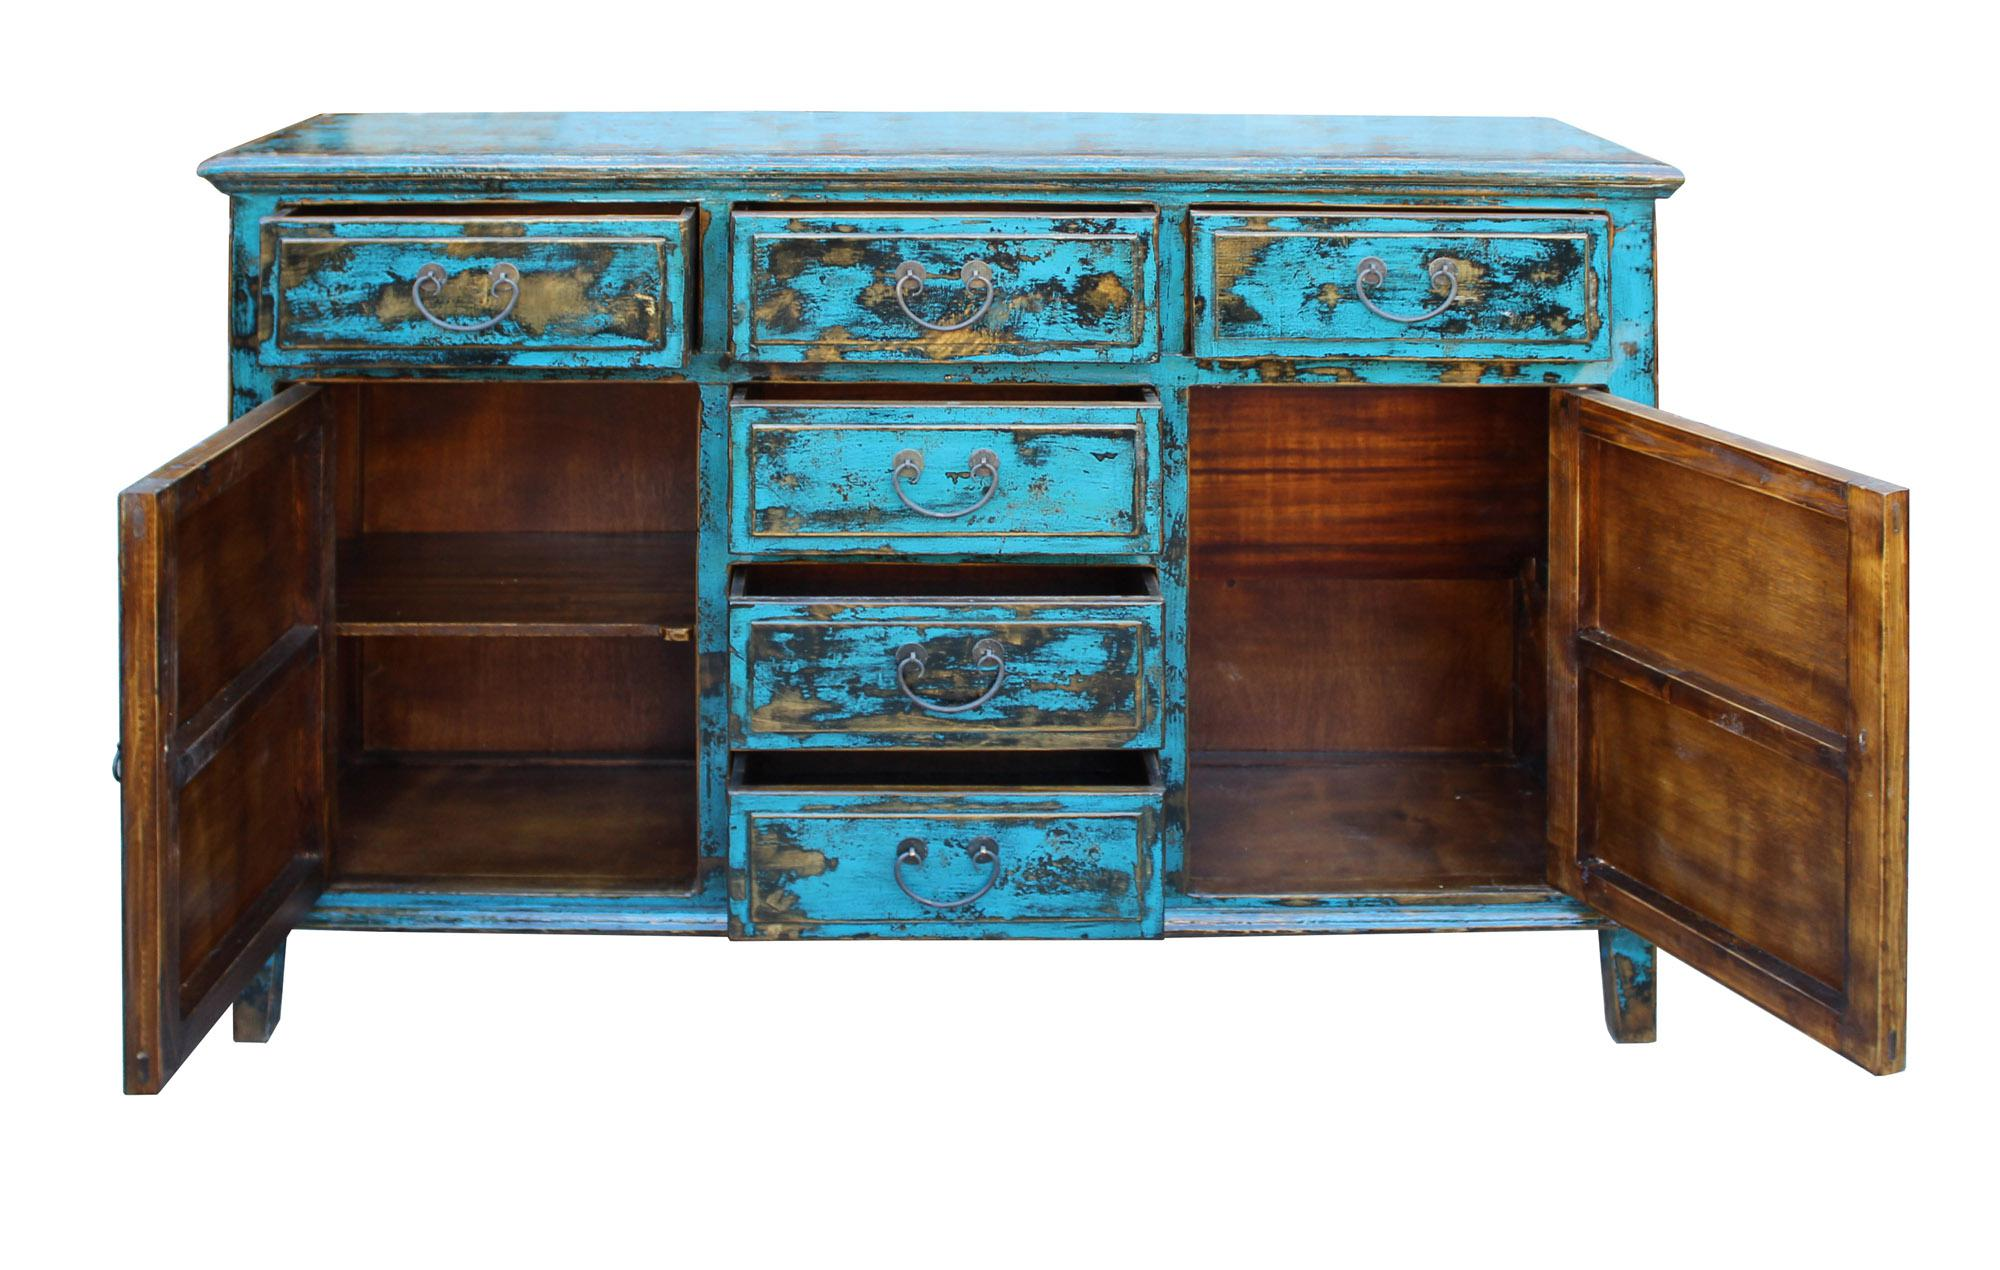 Oriental Distressed Rustic Blue Credenza Sideboard Buffet Table Cabinet    Image 4 Of 6